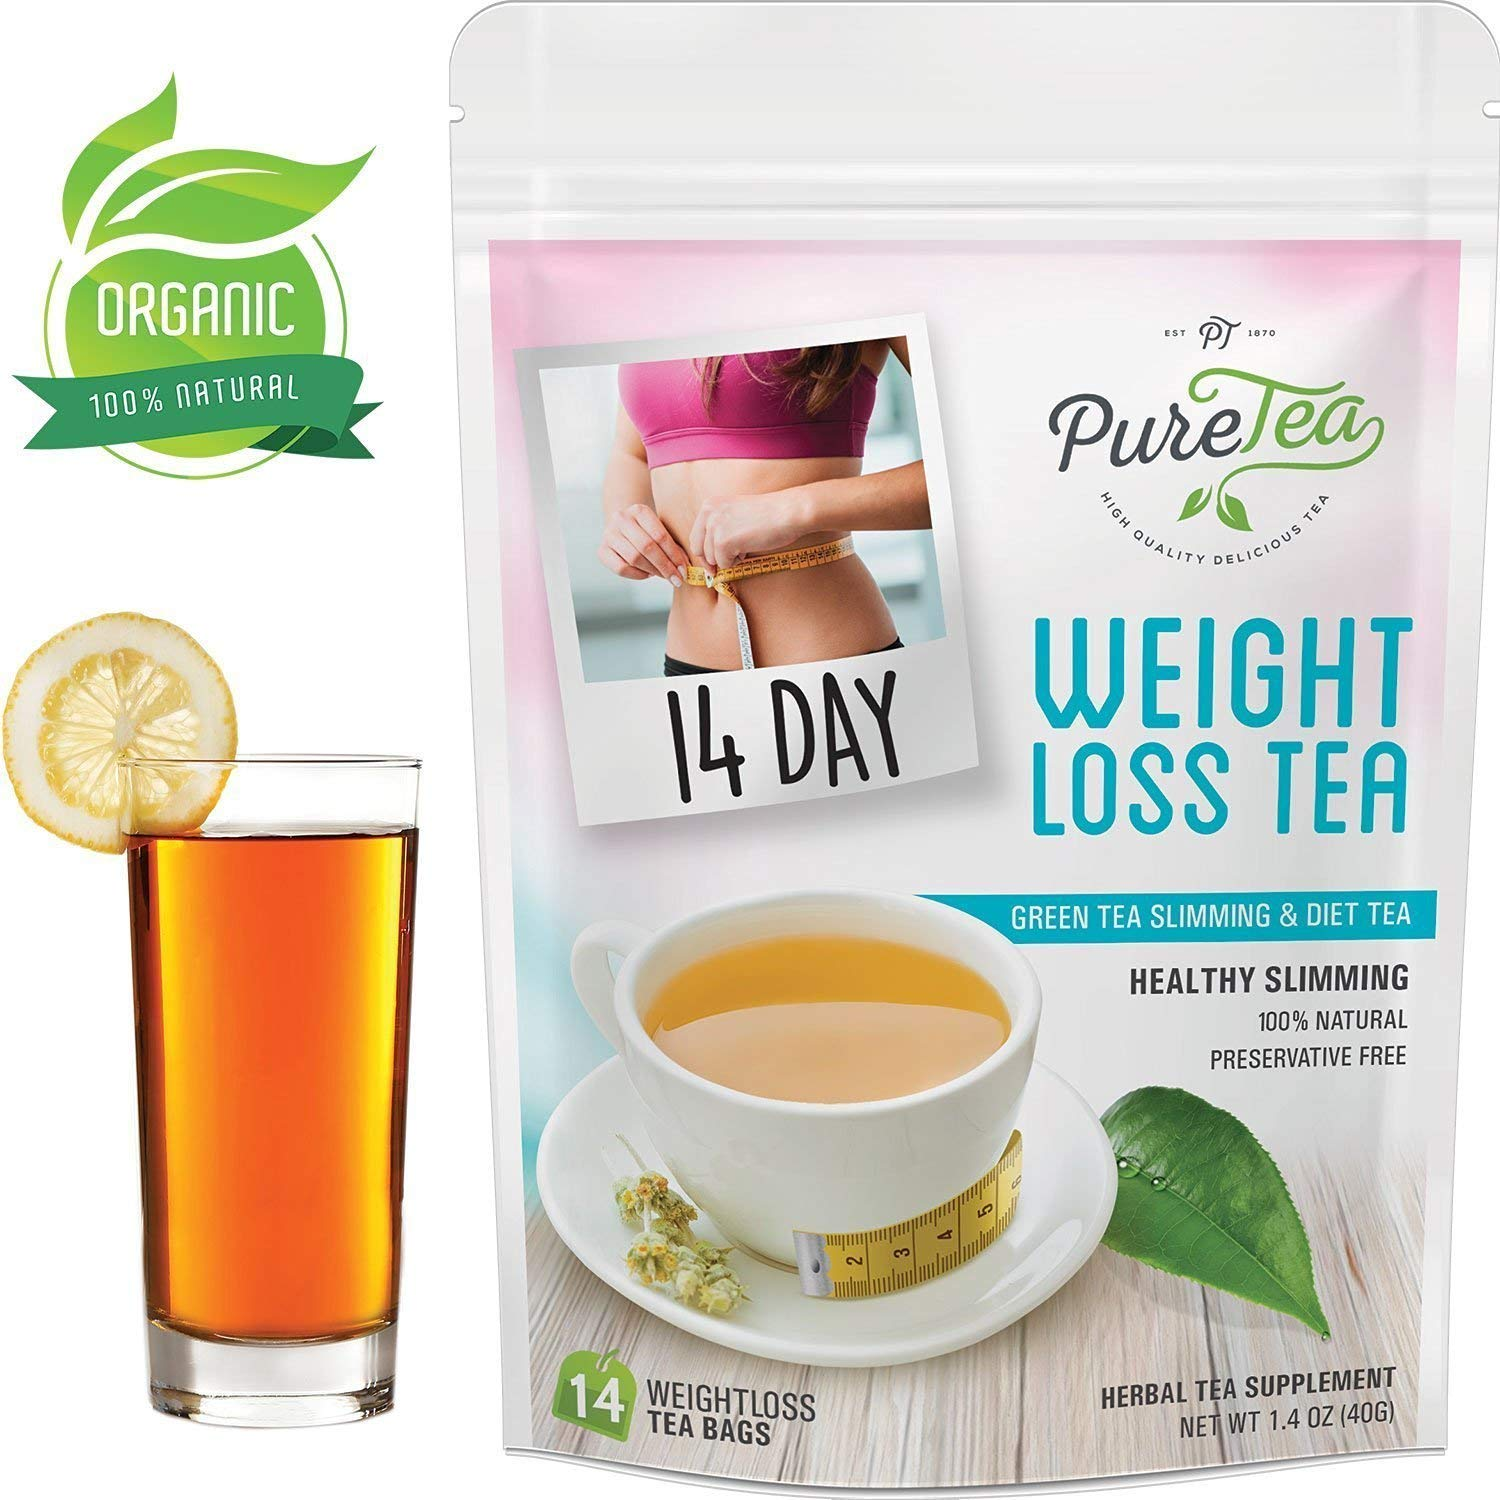 Puretea Detox Tea For Weight Loss Best Slimming Tea And Appetite Suppressant Reduce Bloating And